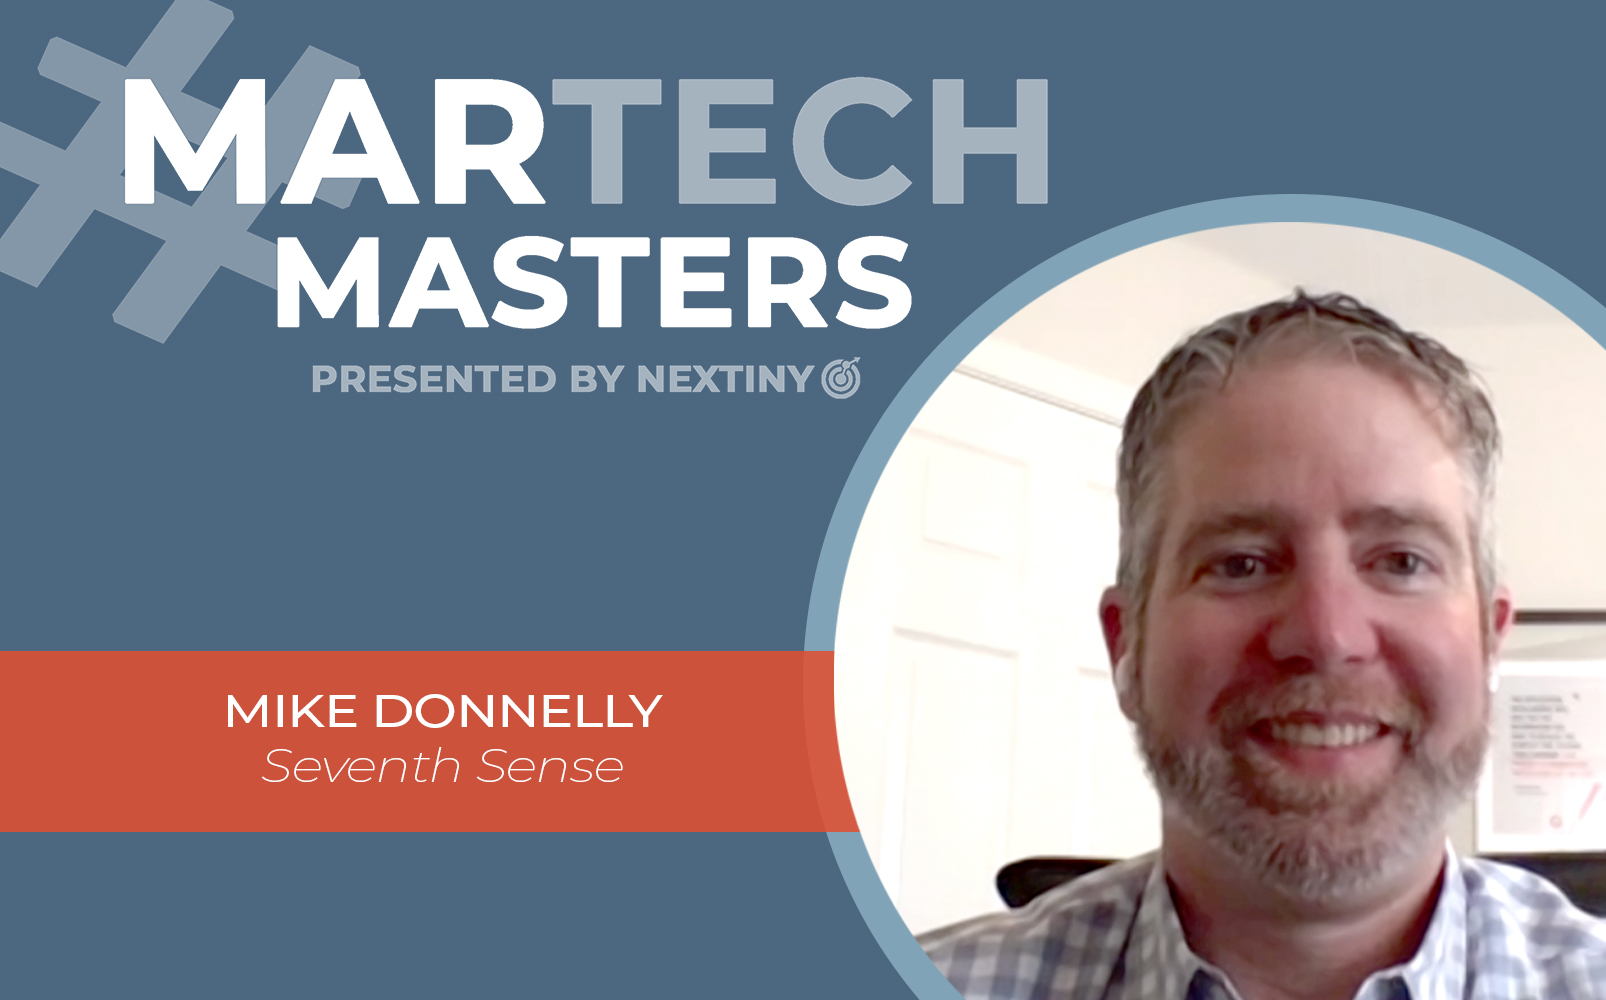 mike donnelly seventh sense martech masters